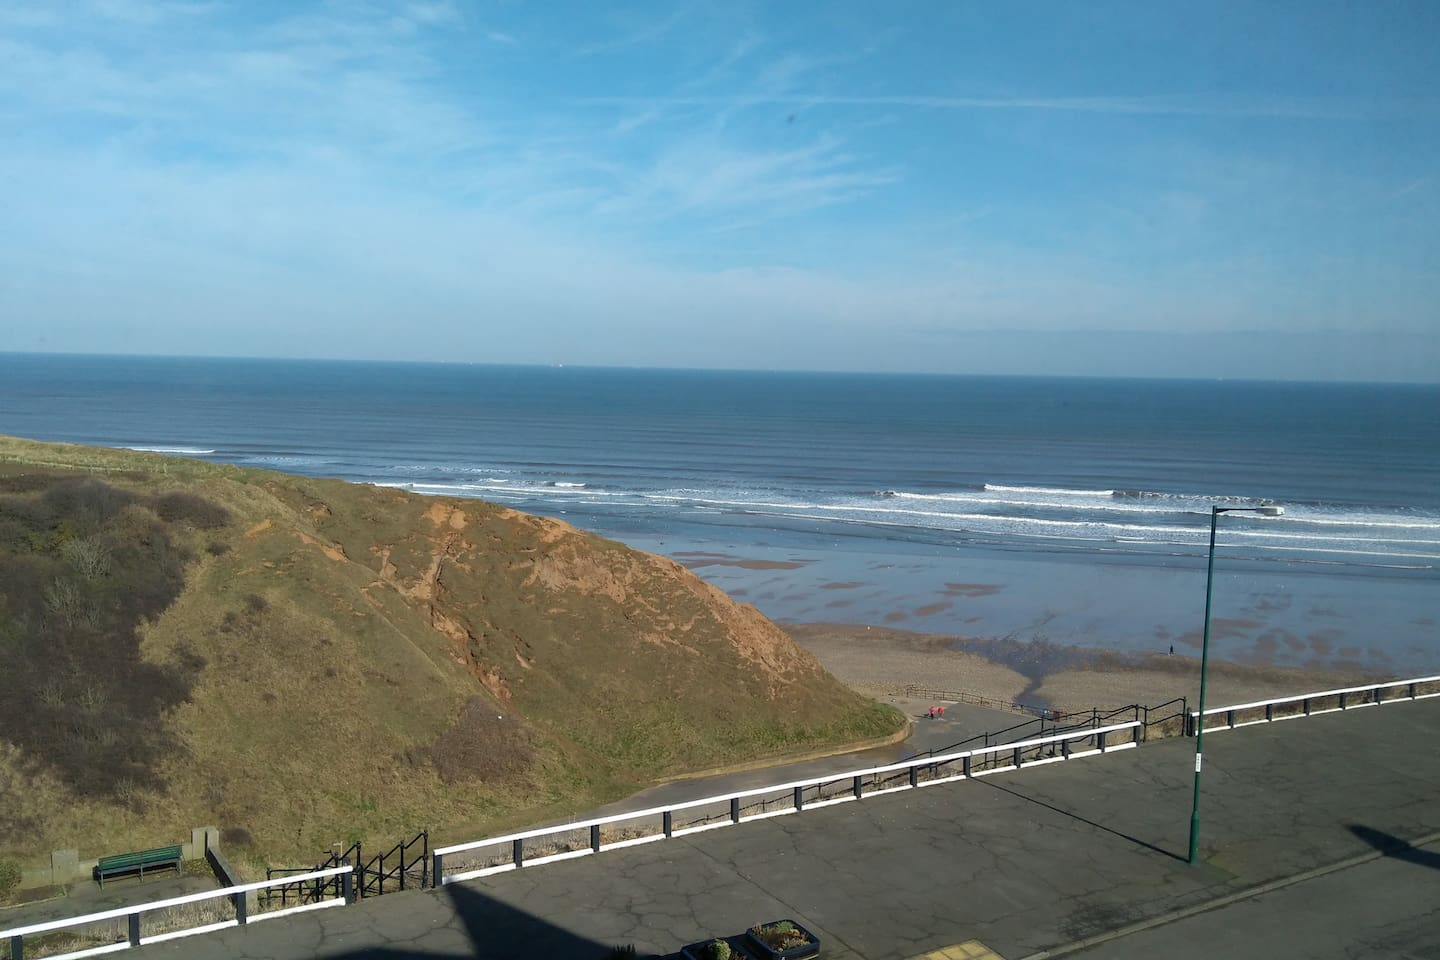 The actual view from the window - enjoy the beach!